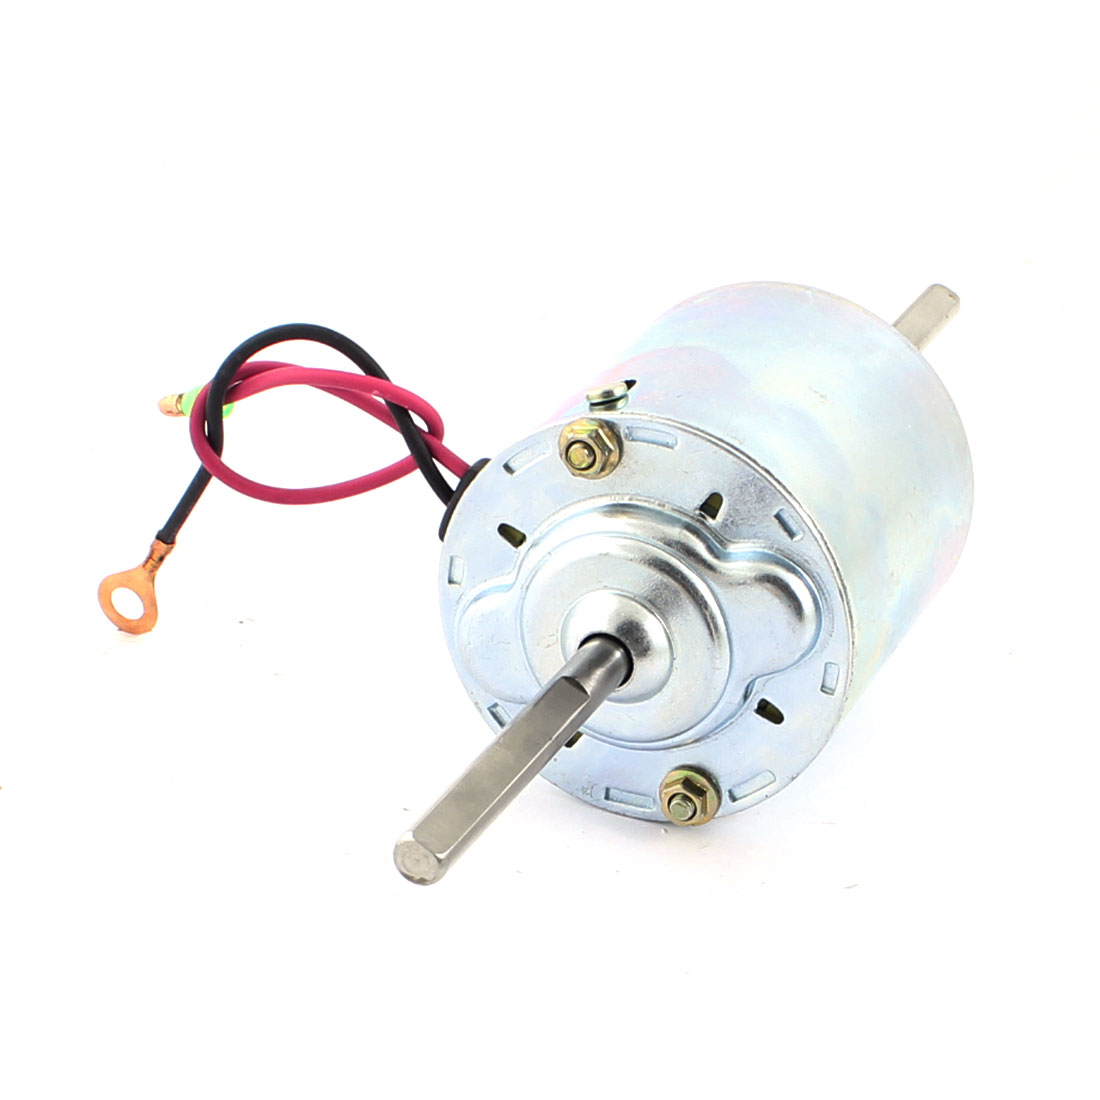 Car Air Conditioner Cooling Fan Evaporator Motor DC 24V 3900R/Min